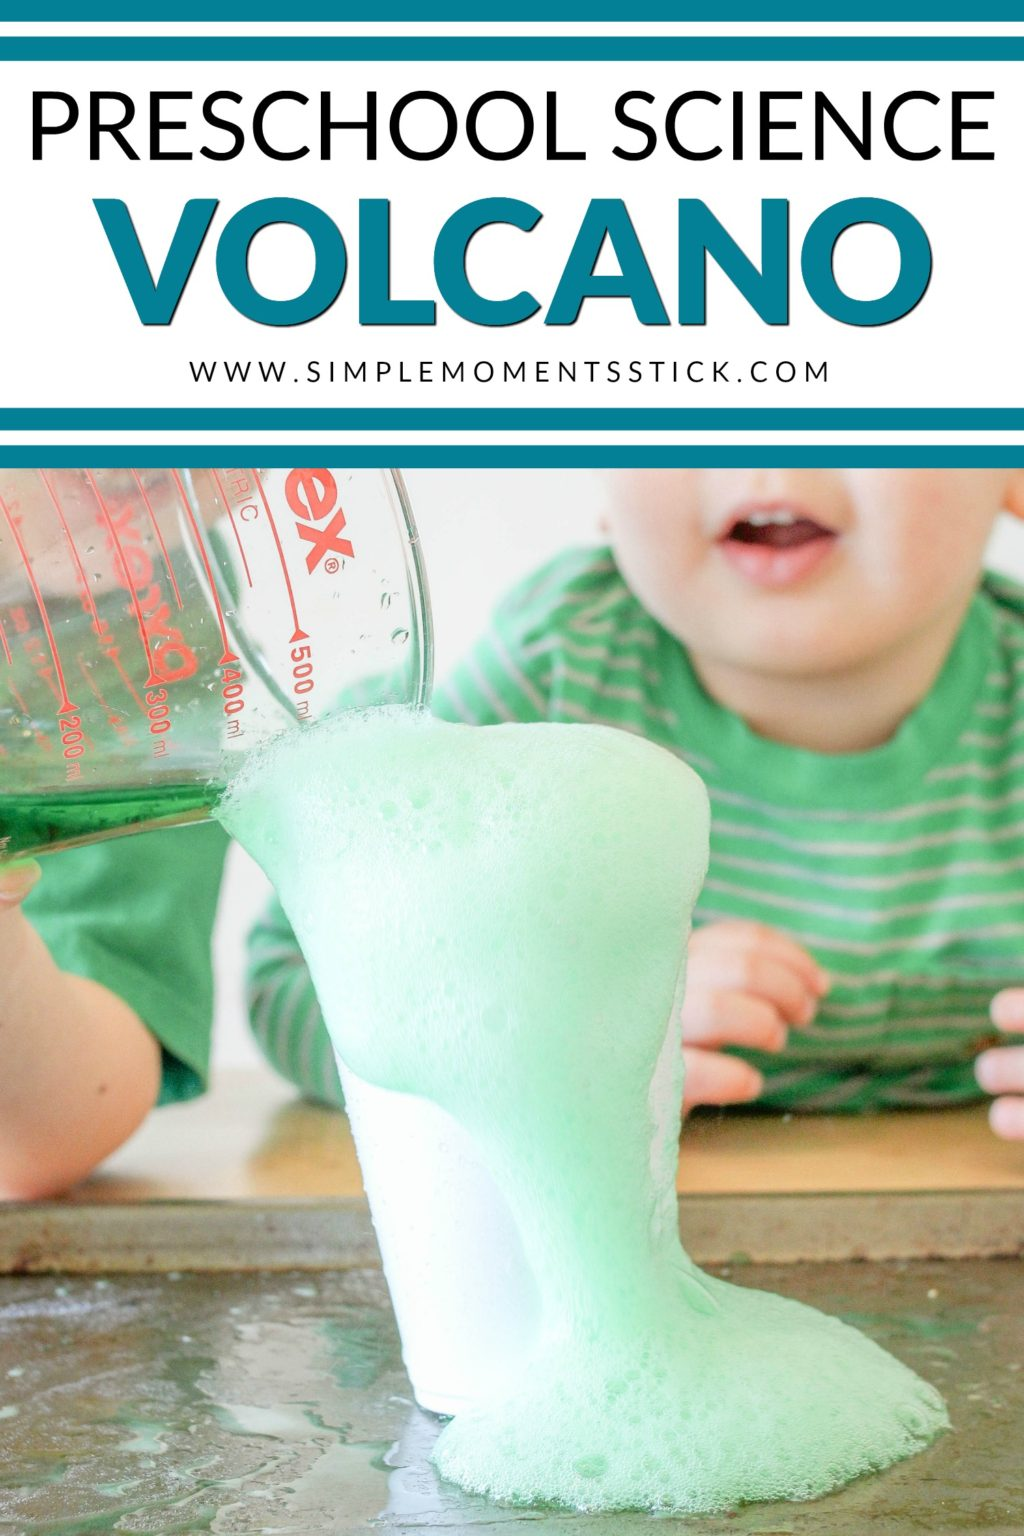 Try out this fantastic exploding volcano science project. It really is the perfect preschool science project!